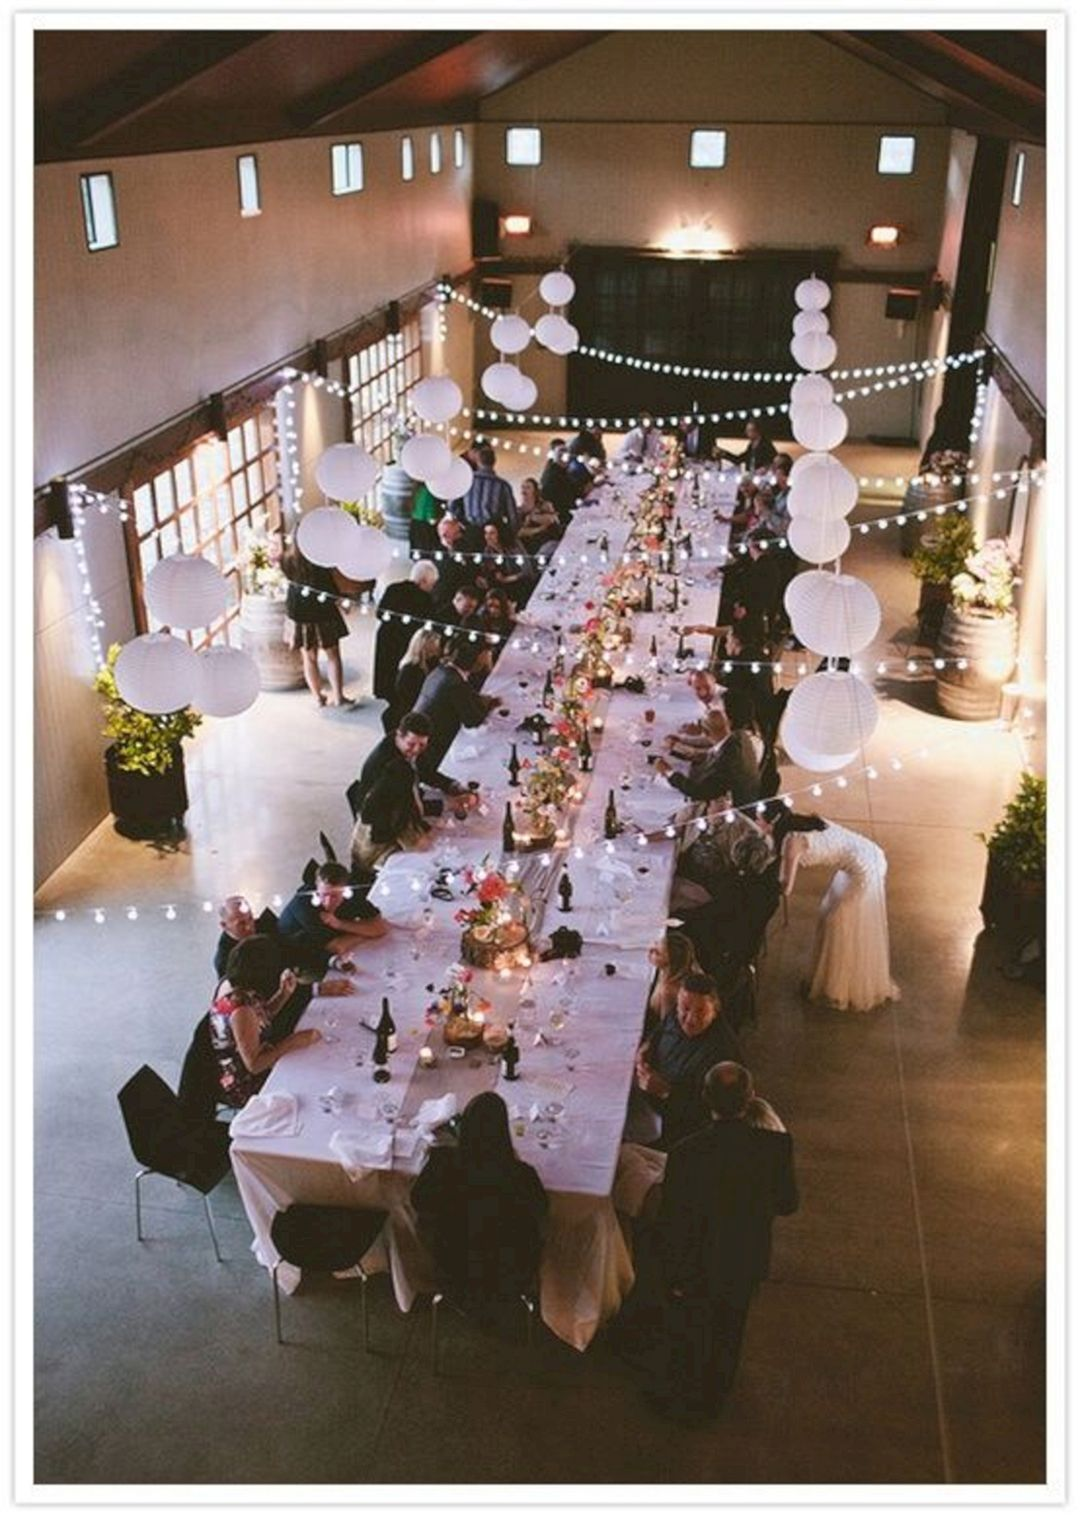 25 Small Wedding Dinner Ideas For Wedding Reception Small Wedding Receptions Small Wedding Wedding Dinner